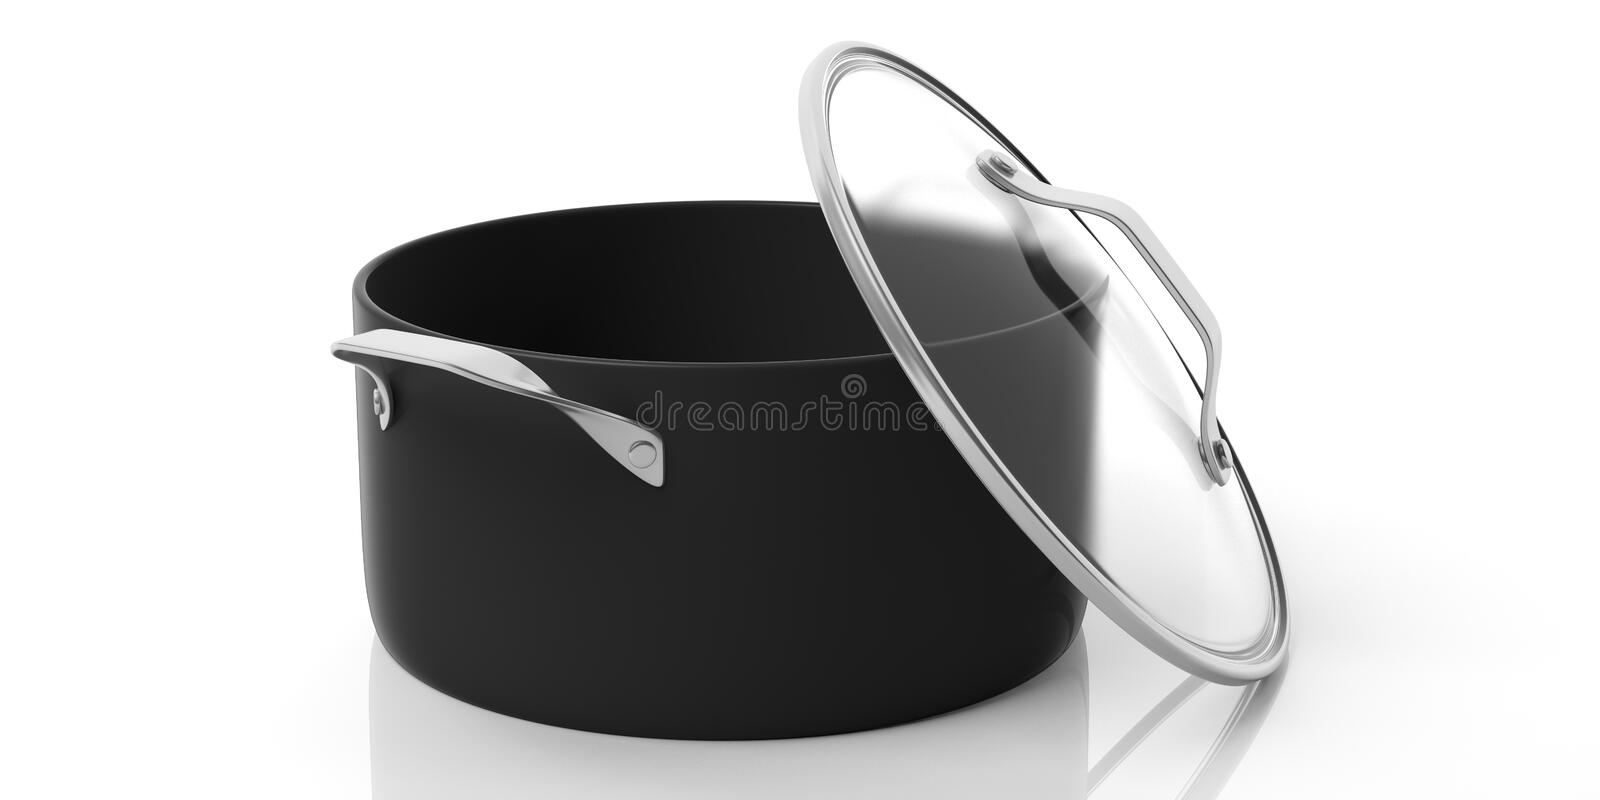 Black stainless steel cooking pot isolated on white background. 3d illustration vector illustration